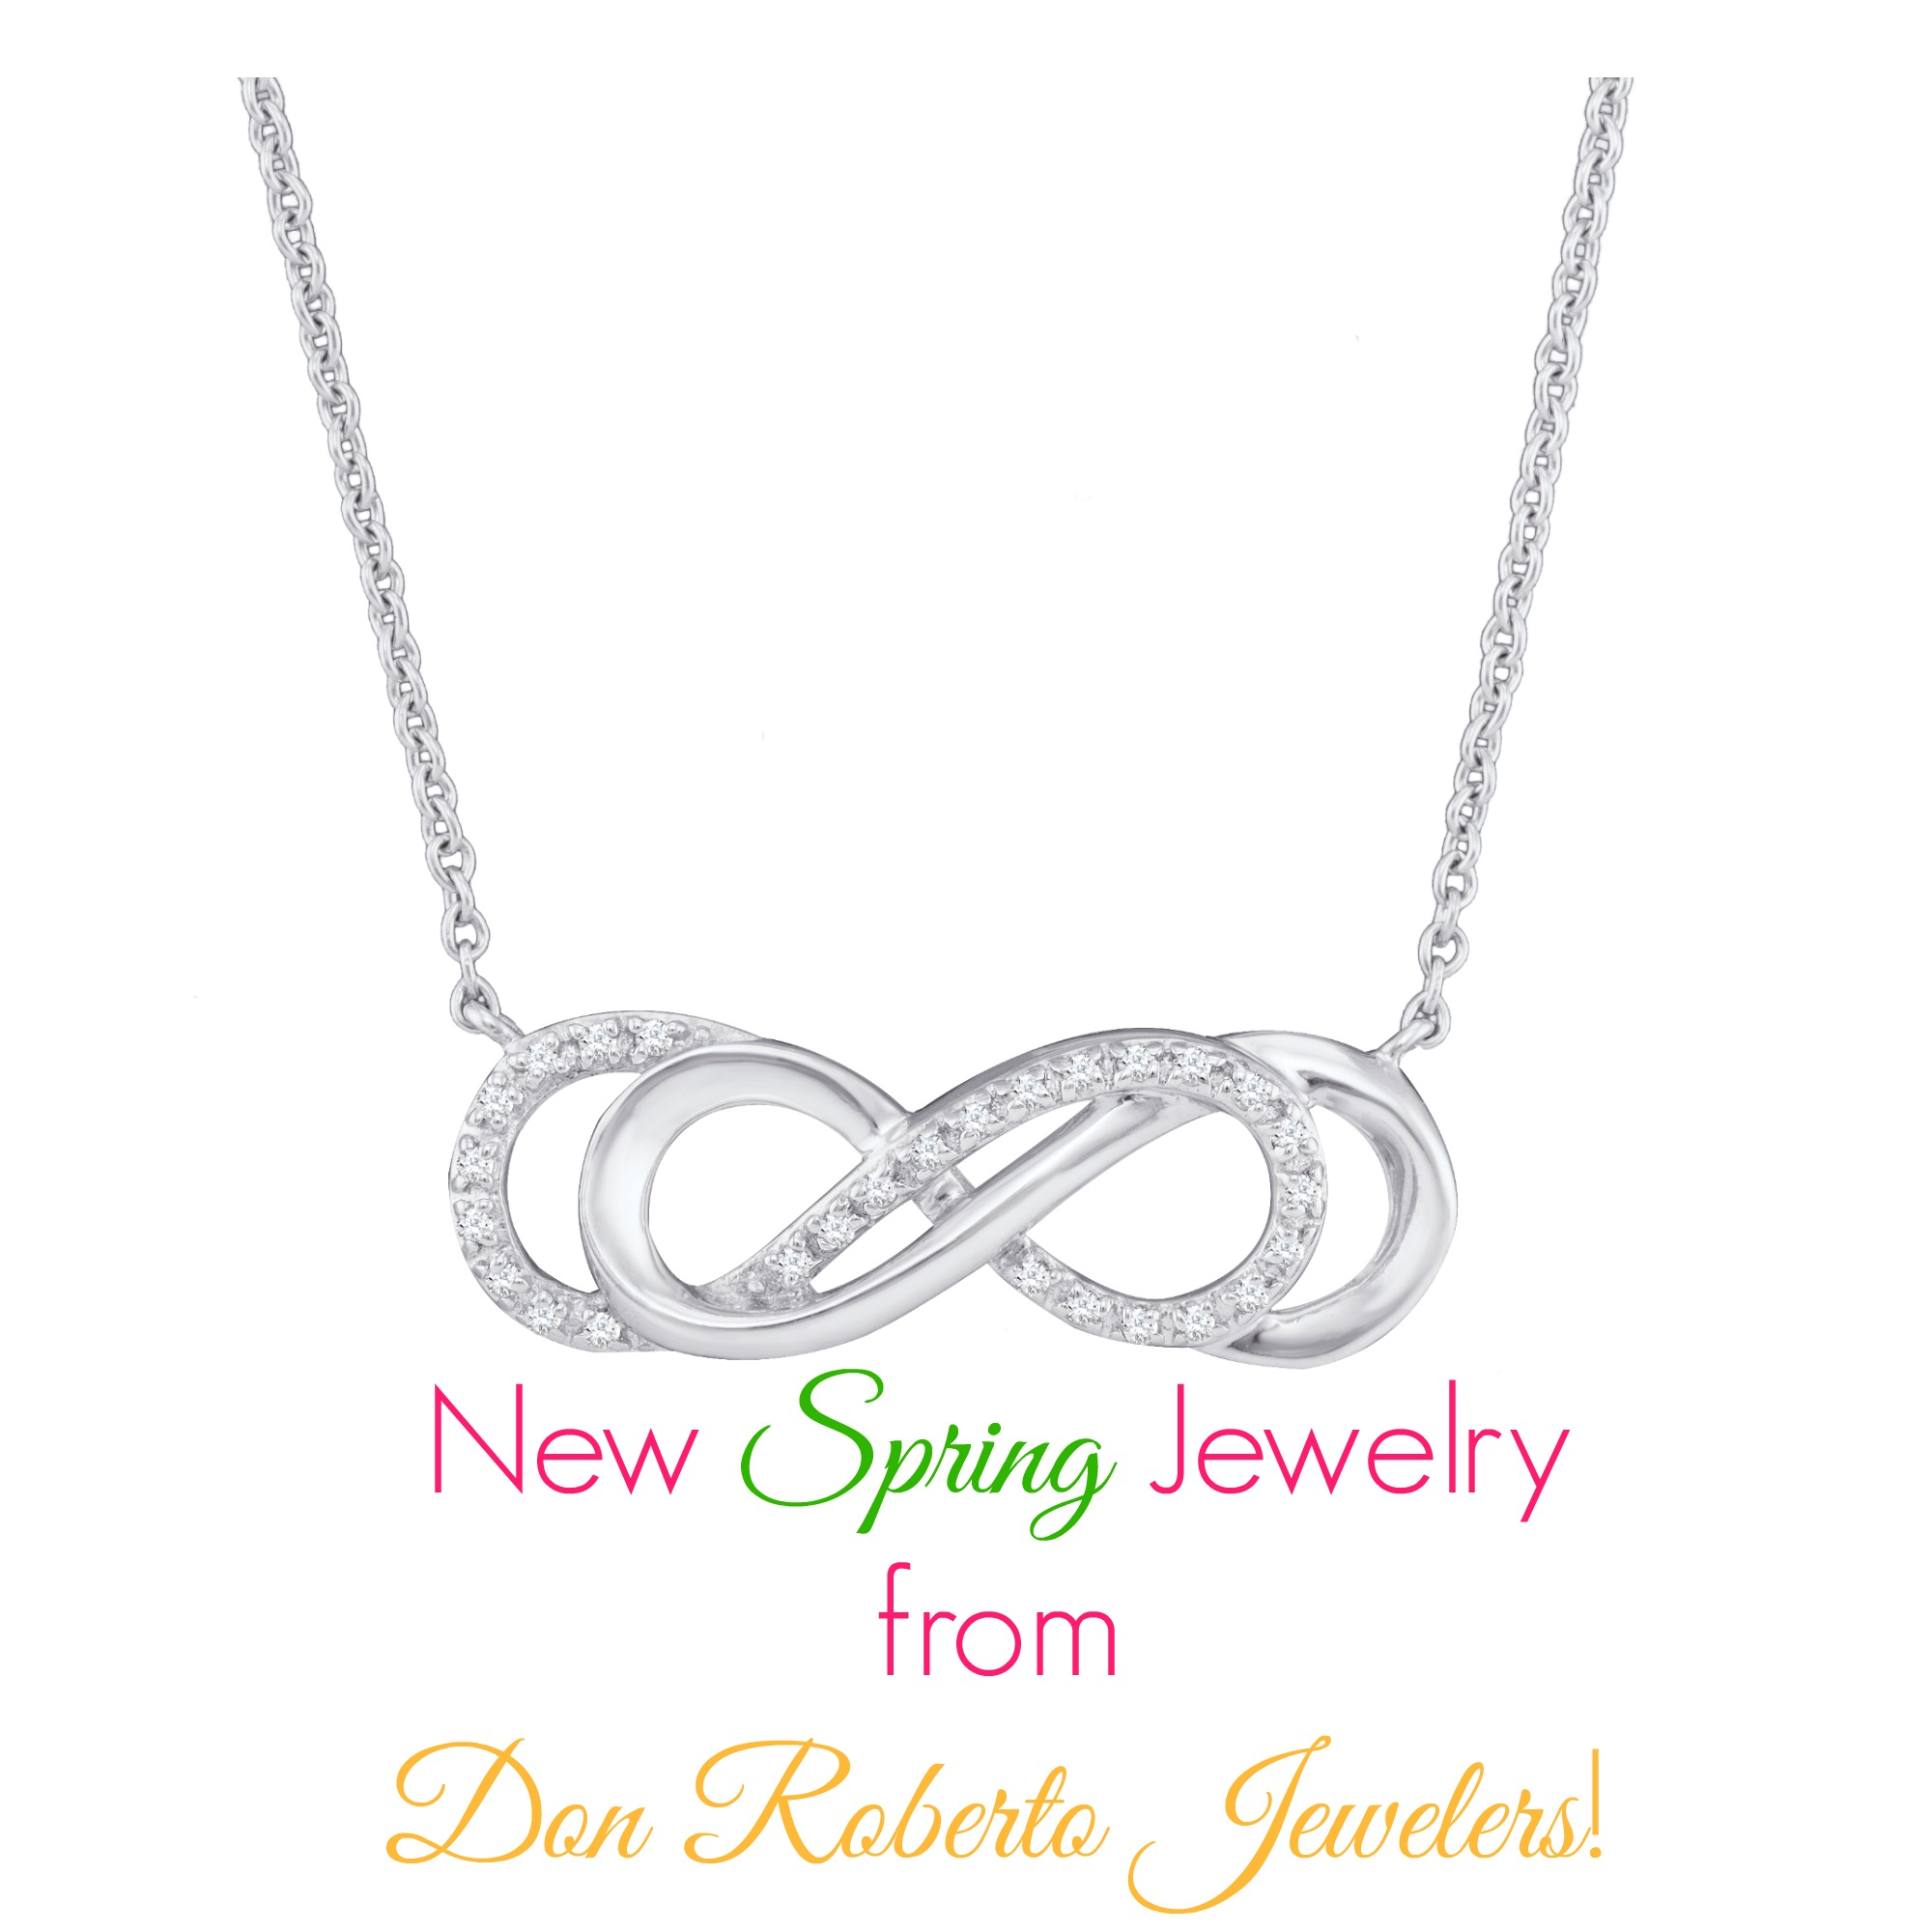 new-spring-jewelry-from-don-roberto-jewelers-discount-code